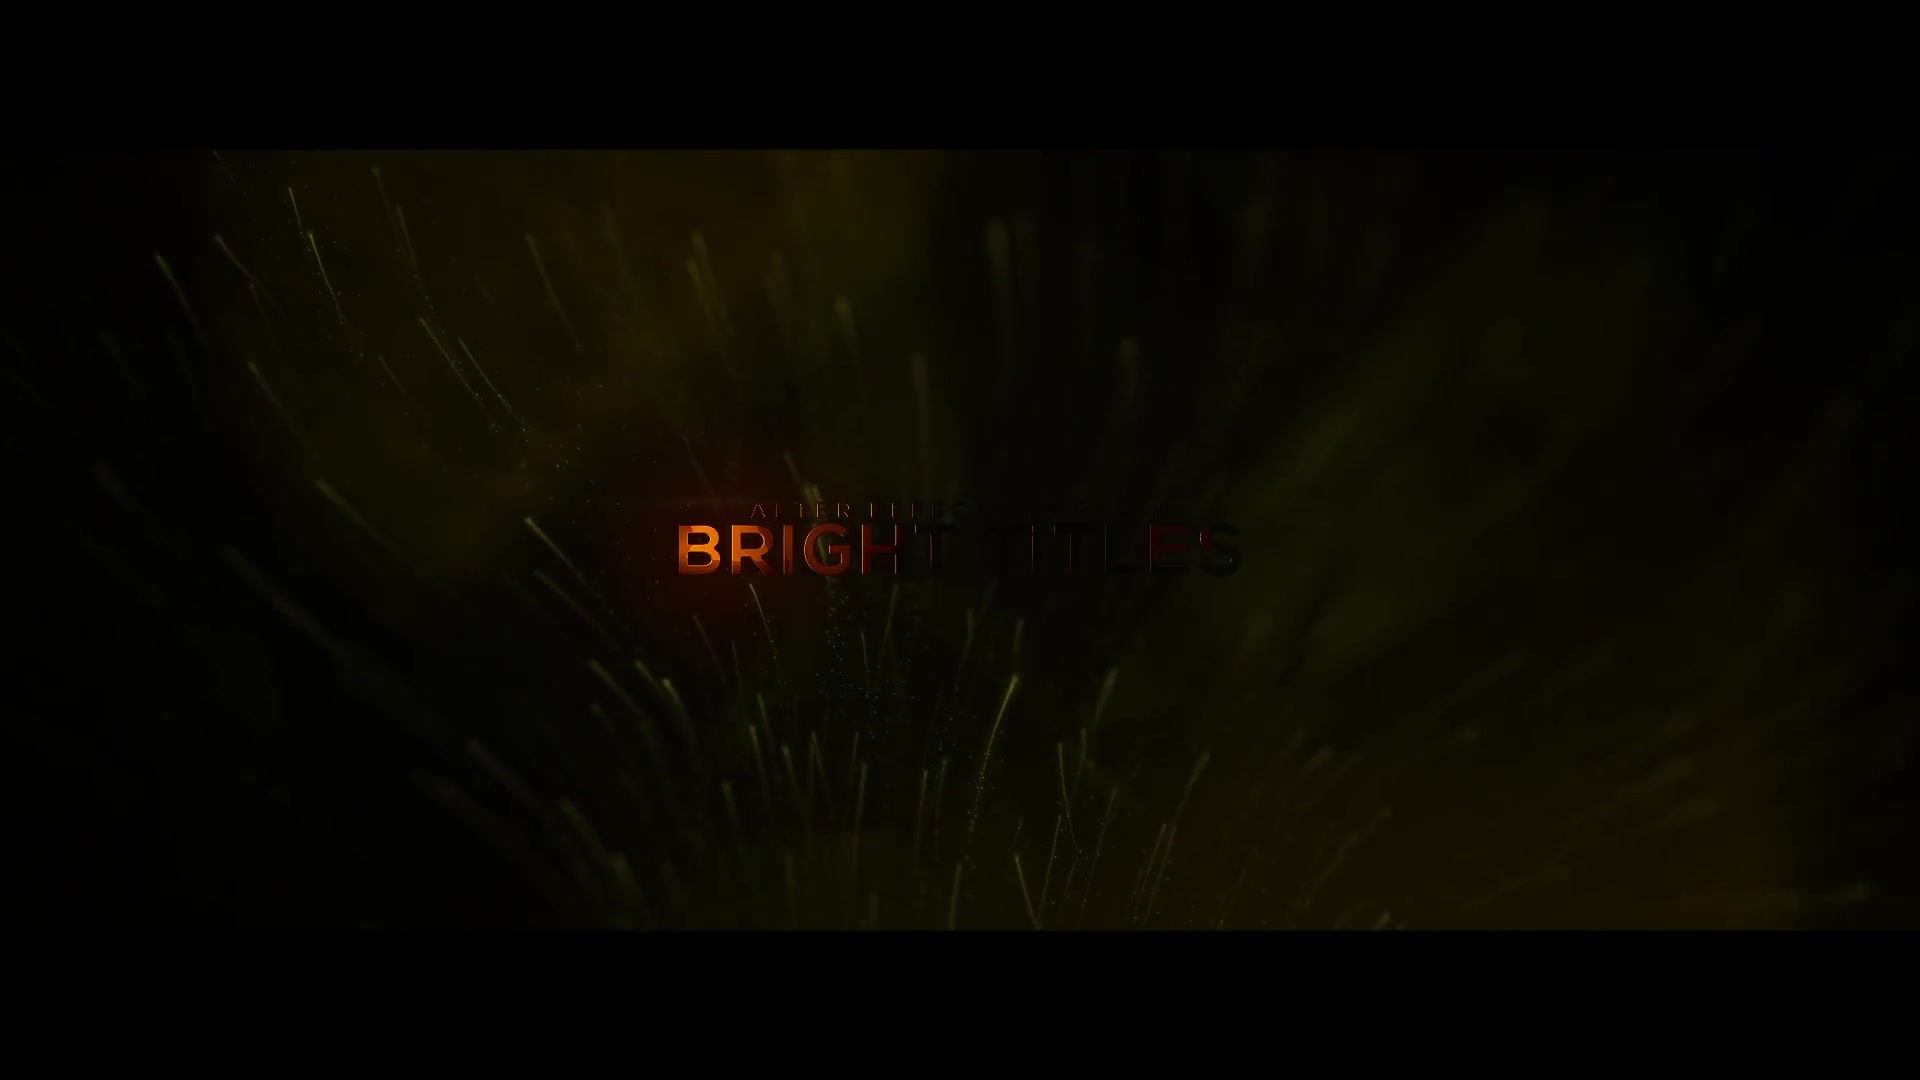 Bright and Shine Awards Titles - Download Videohive 19653172